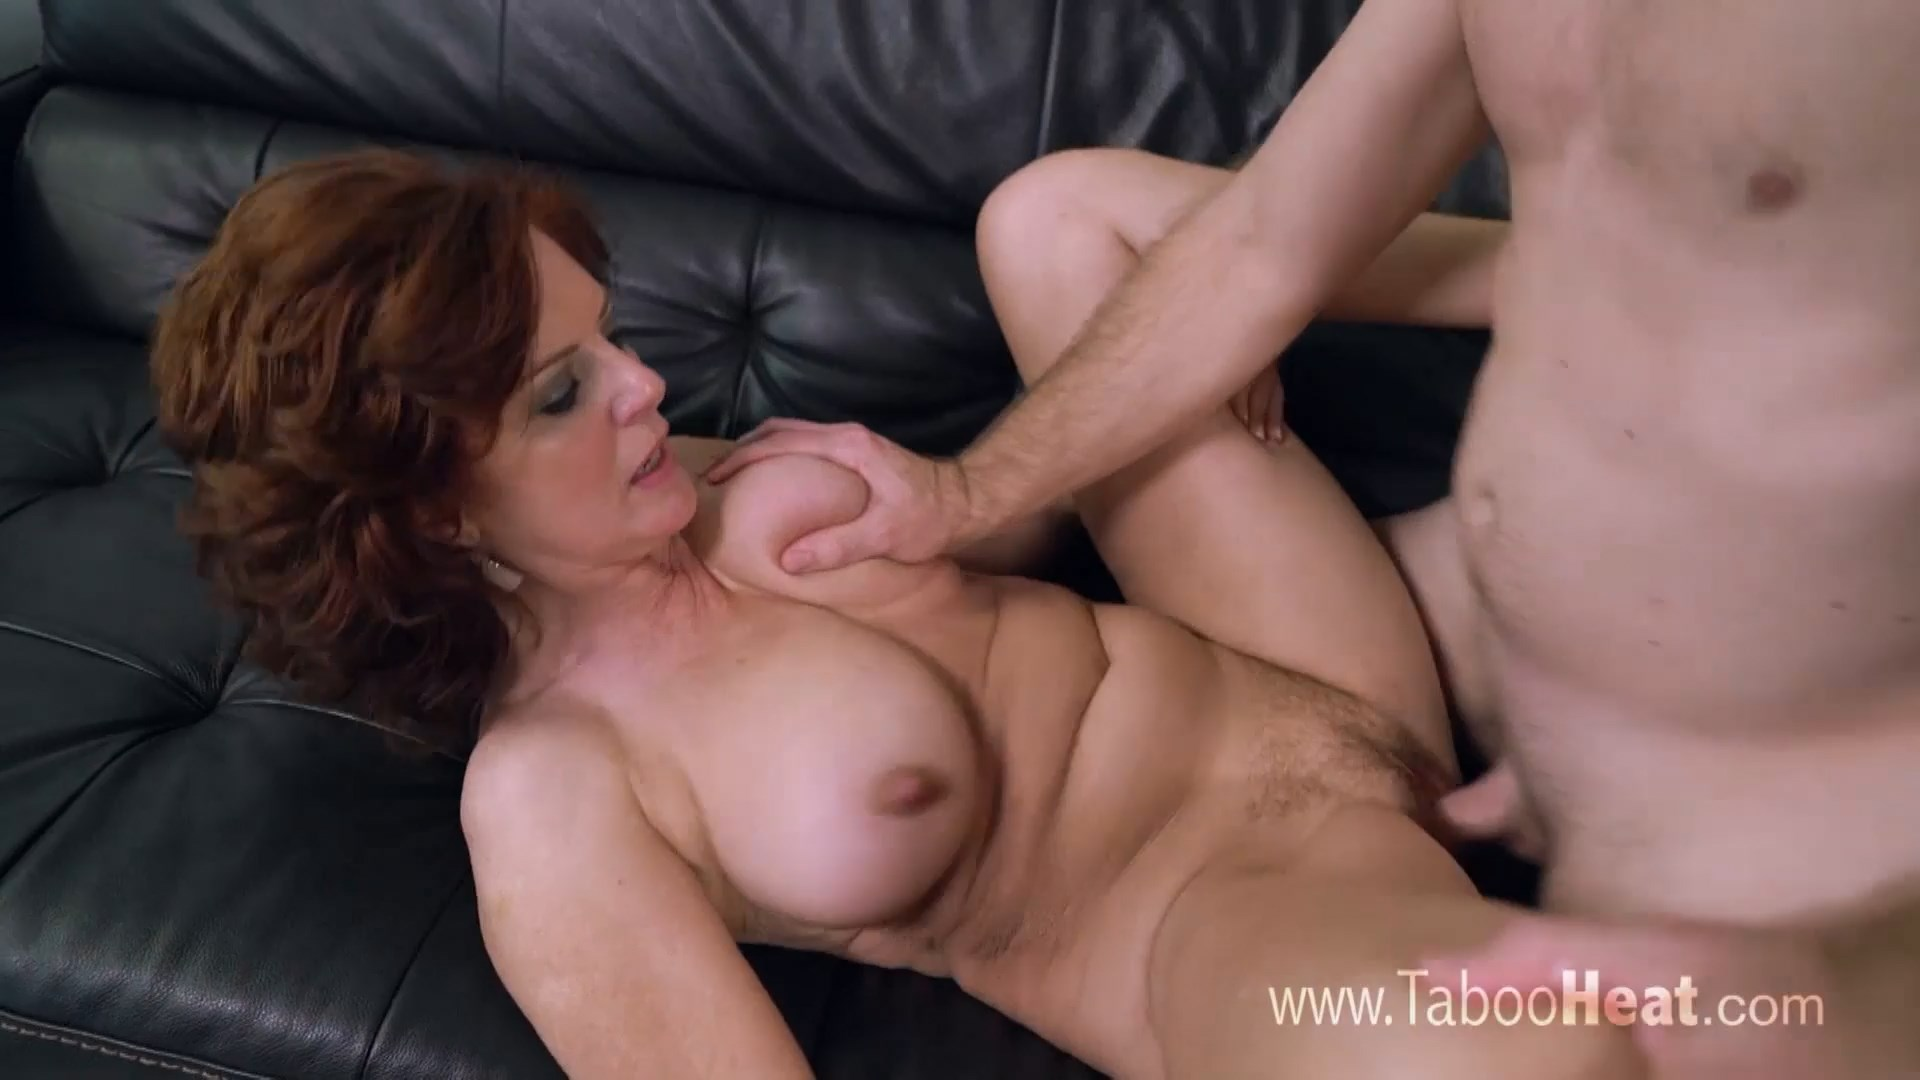 Bare Back Studios - Mommy Continues To Learn Her Place - Scene Two: Montage - Andi James